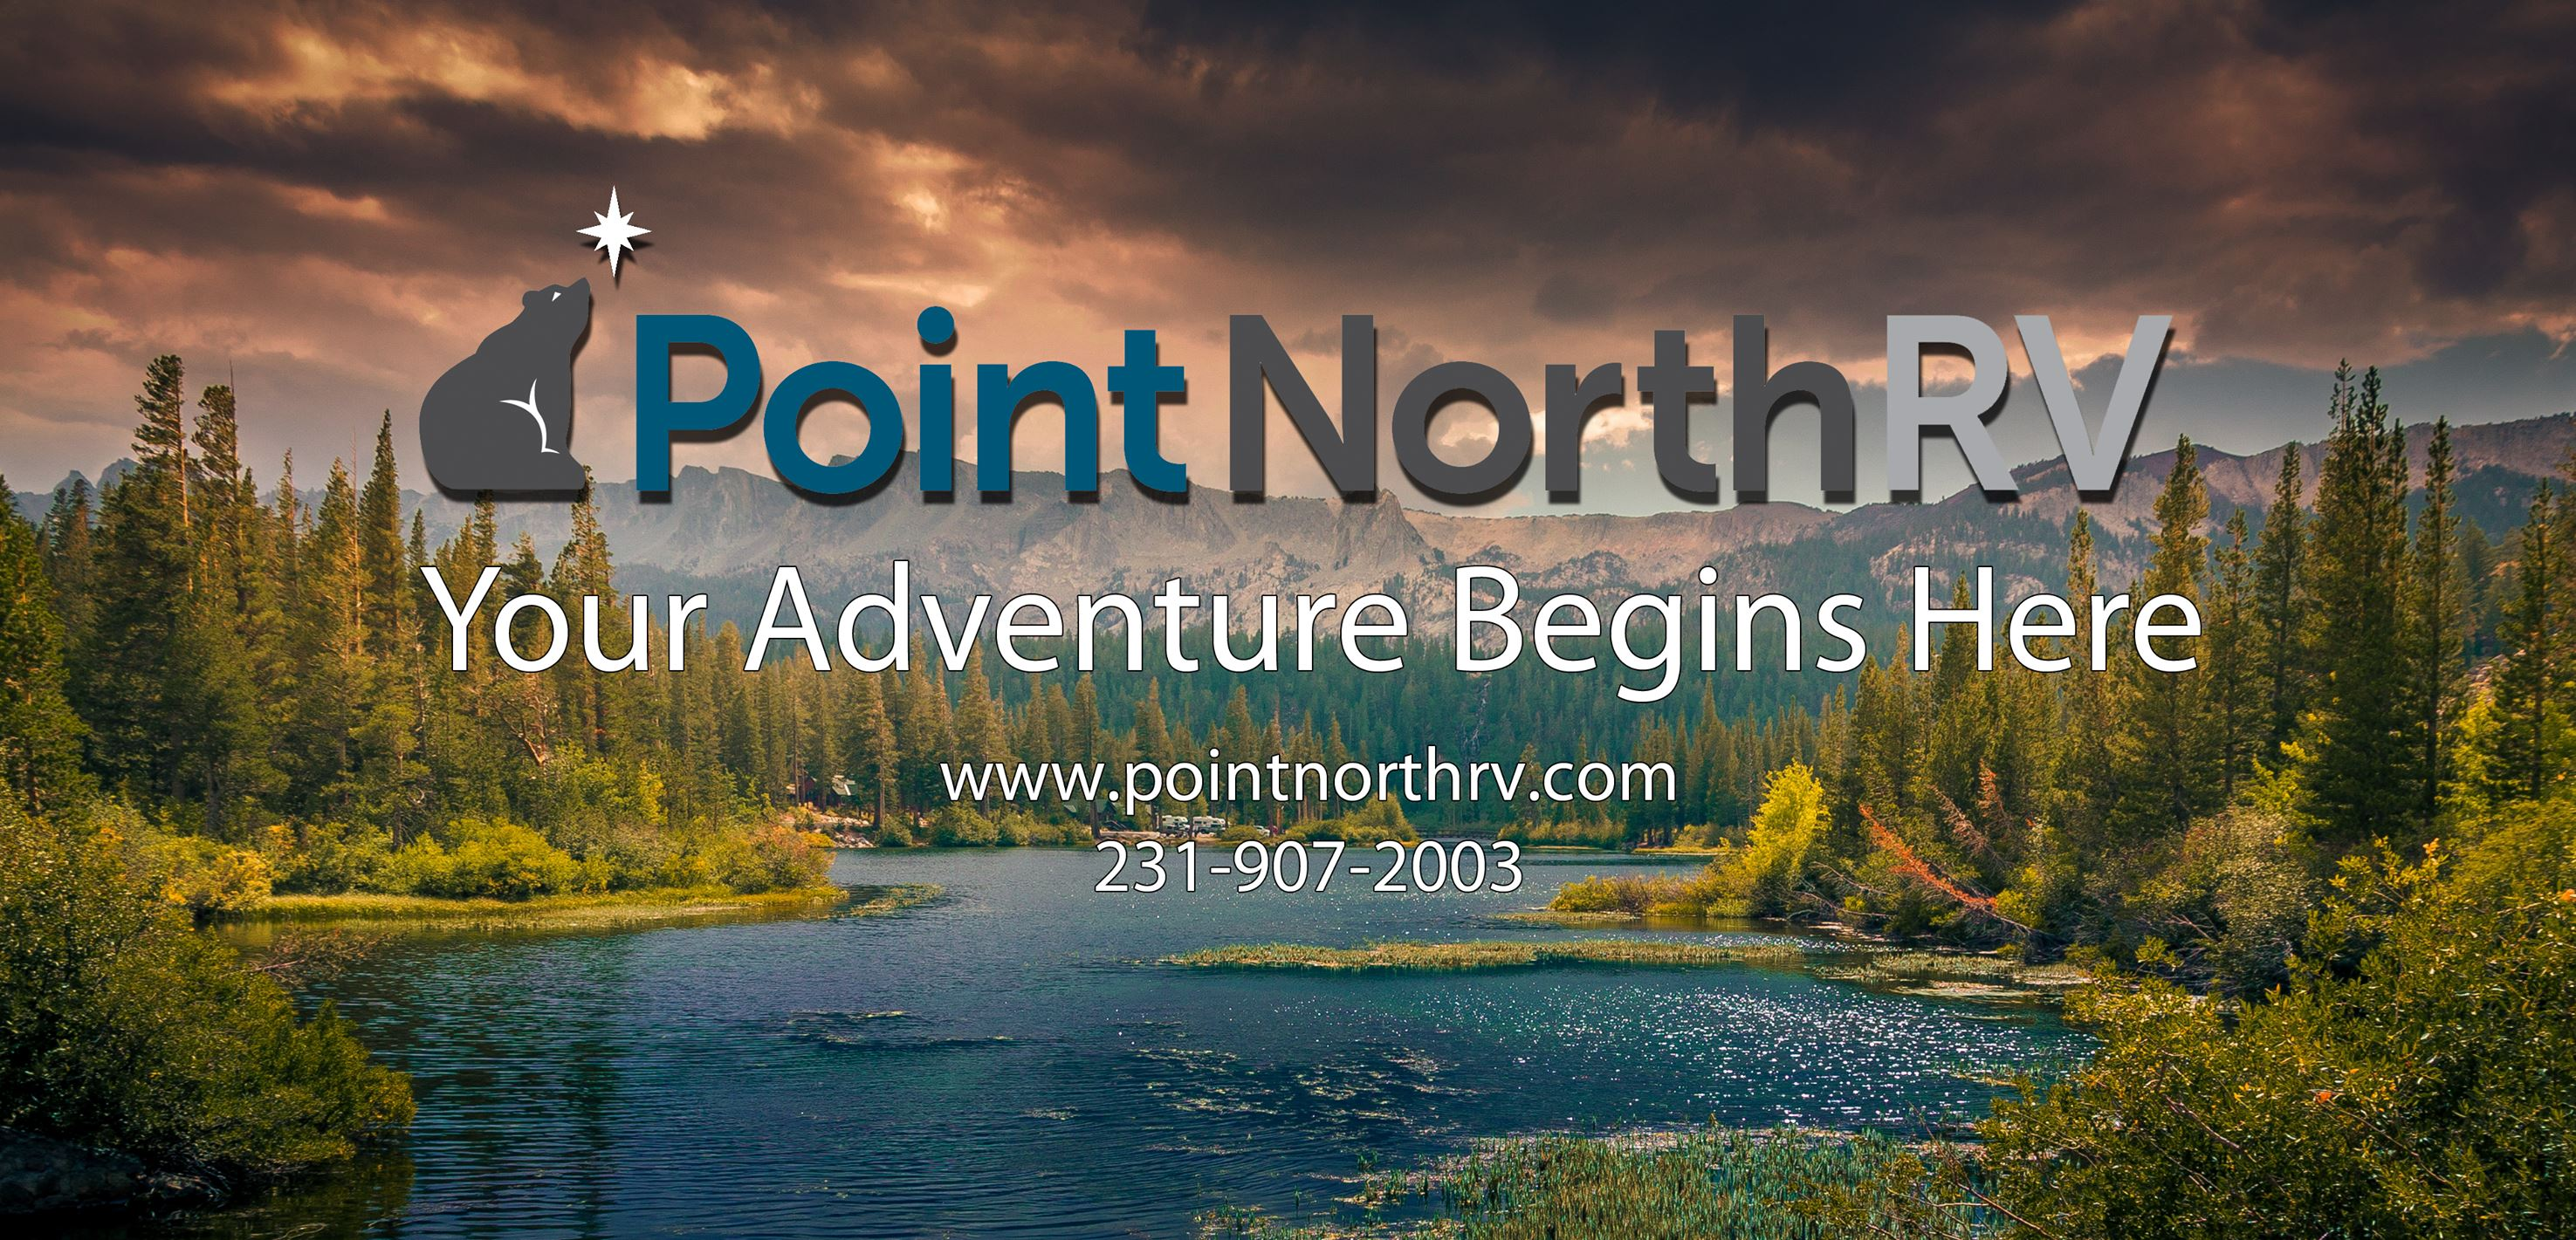 Point North RV